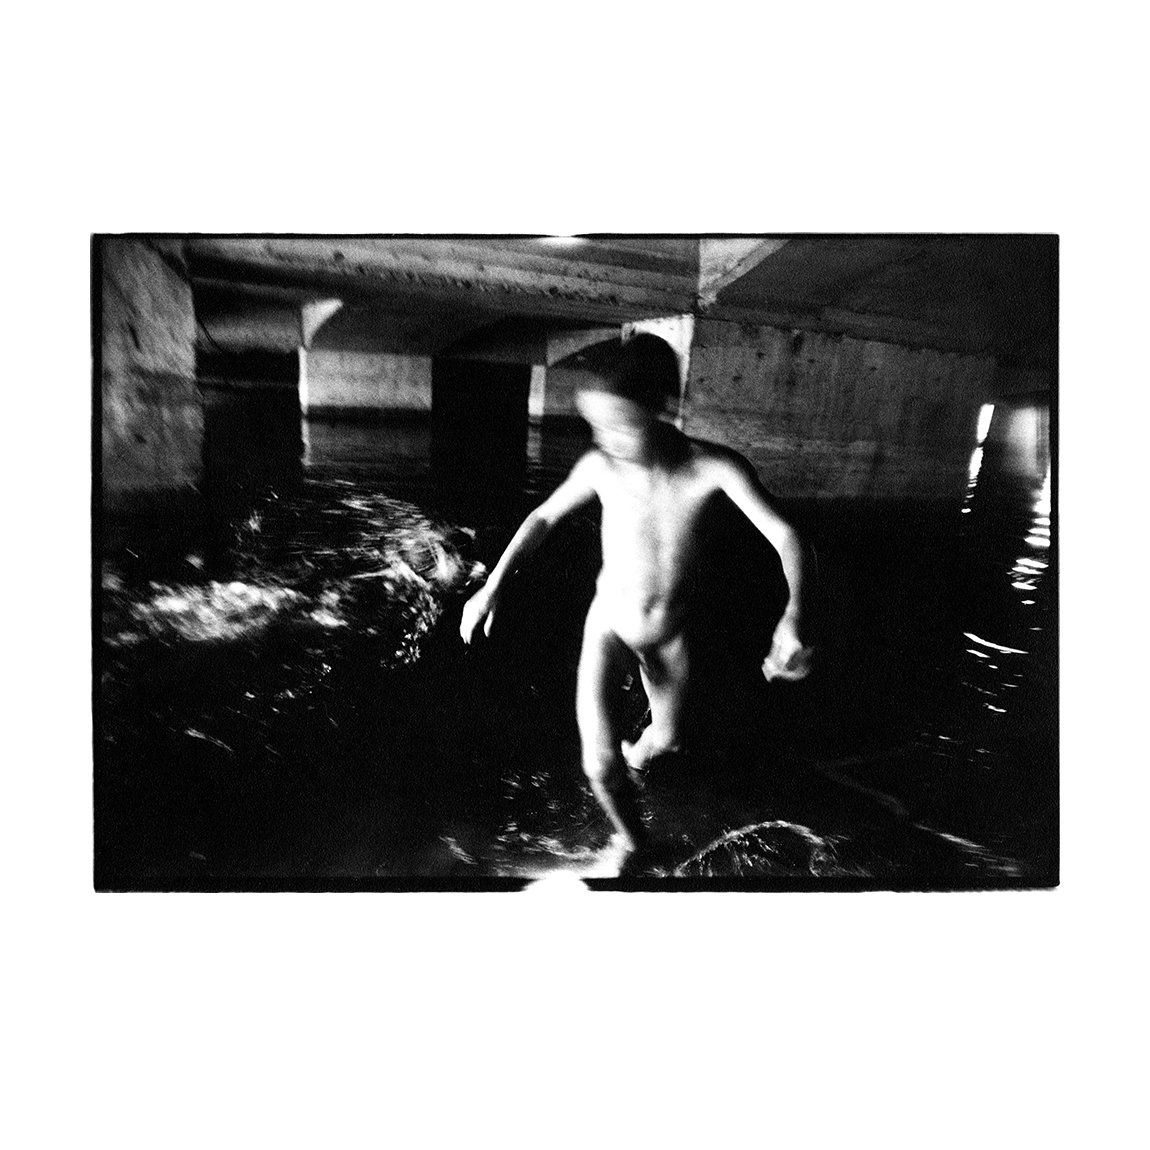 Dâmboviţa River, Bucureşti, Romania. August 1992  B&W #analogue #Documentary & #Reportage #photography   All images are shot with a Nikkormat & 24mm lens using @Kodak TMax 400. Images are printed by the #photographer & are uncropped.  http://TobyDeveson.com  #BelieveInFilm #Film